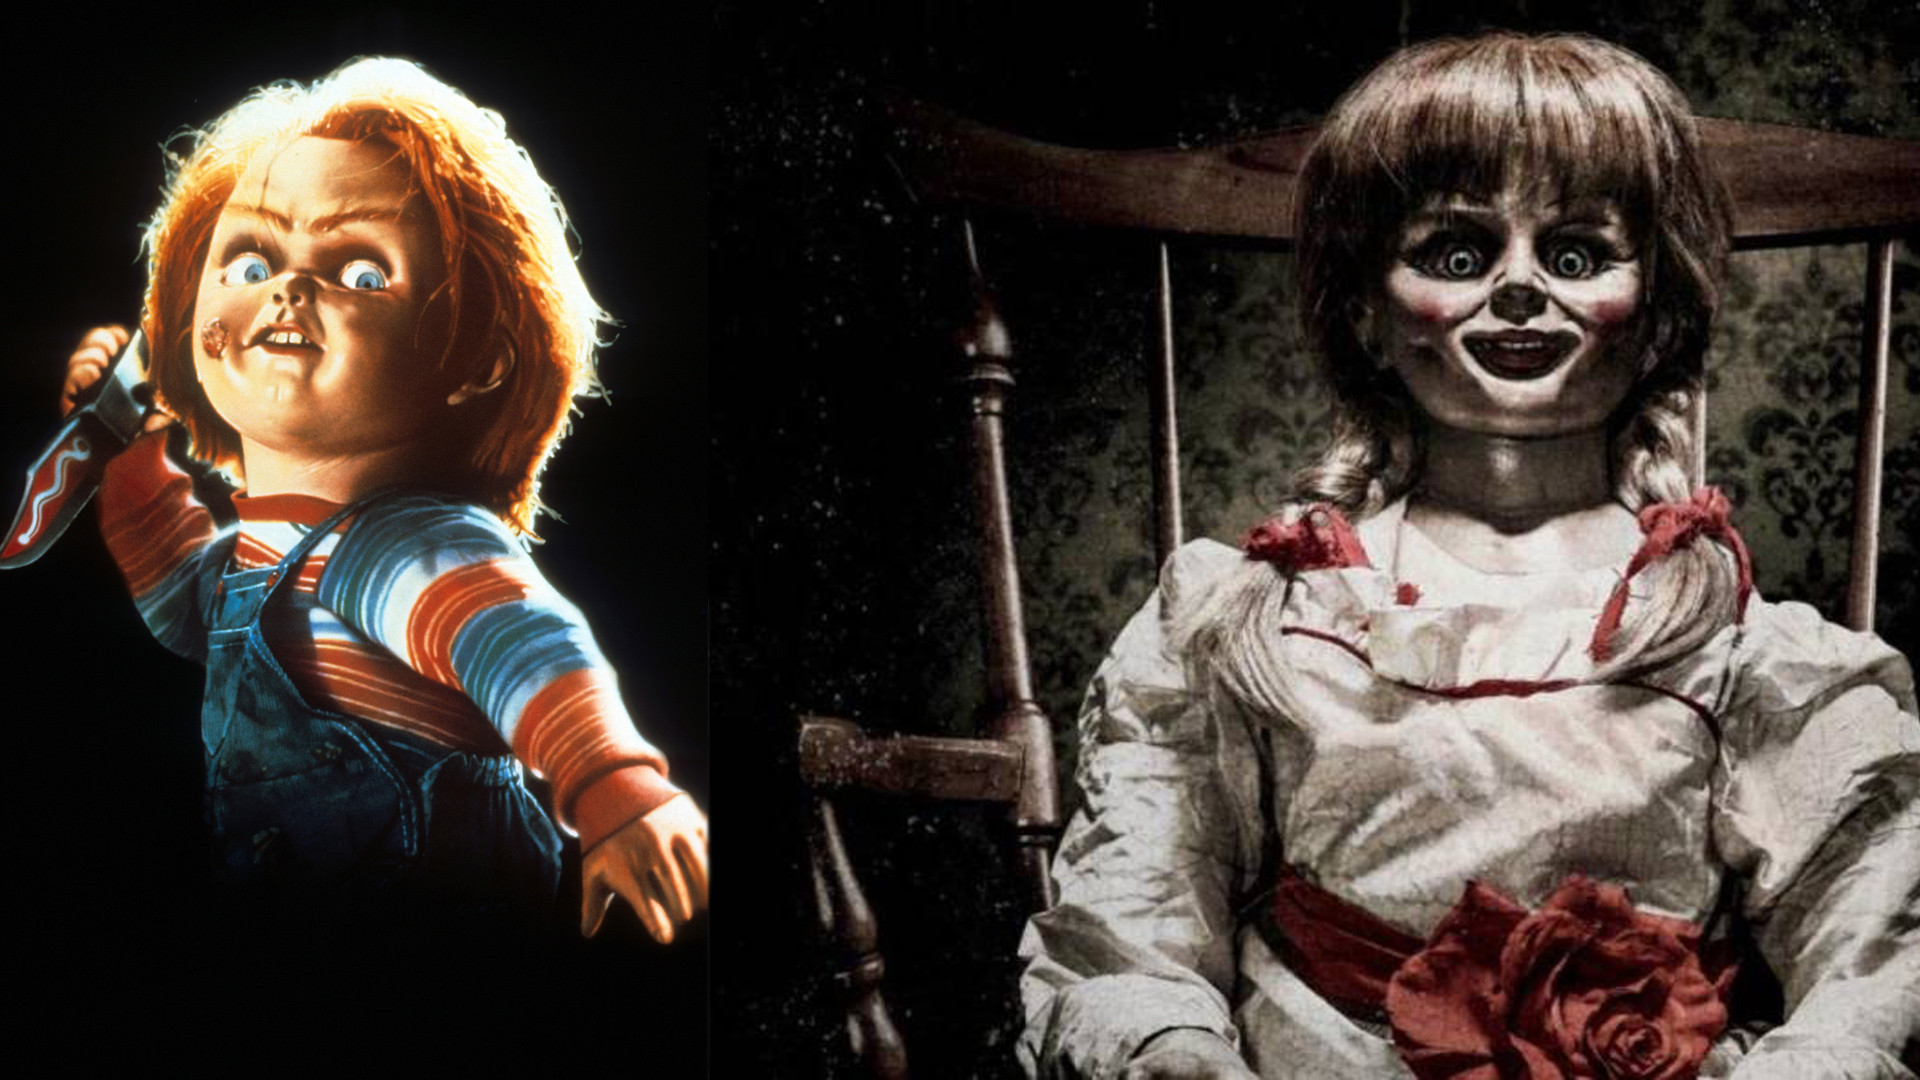 1920x1080 Chucky: Which creepy doll should you fear the most? | SYFY WIRE